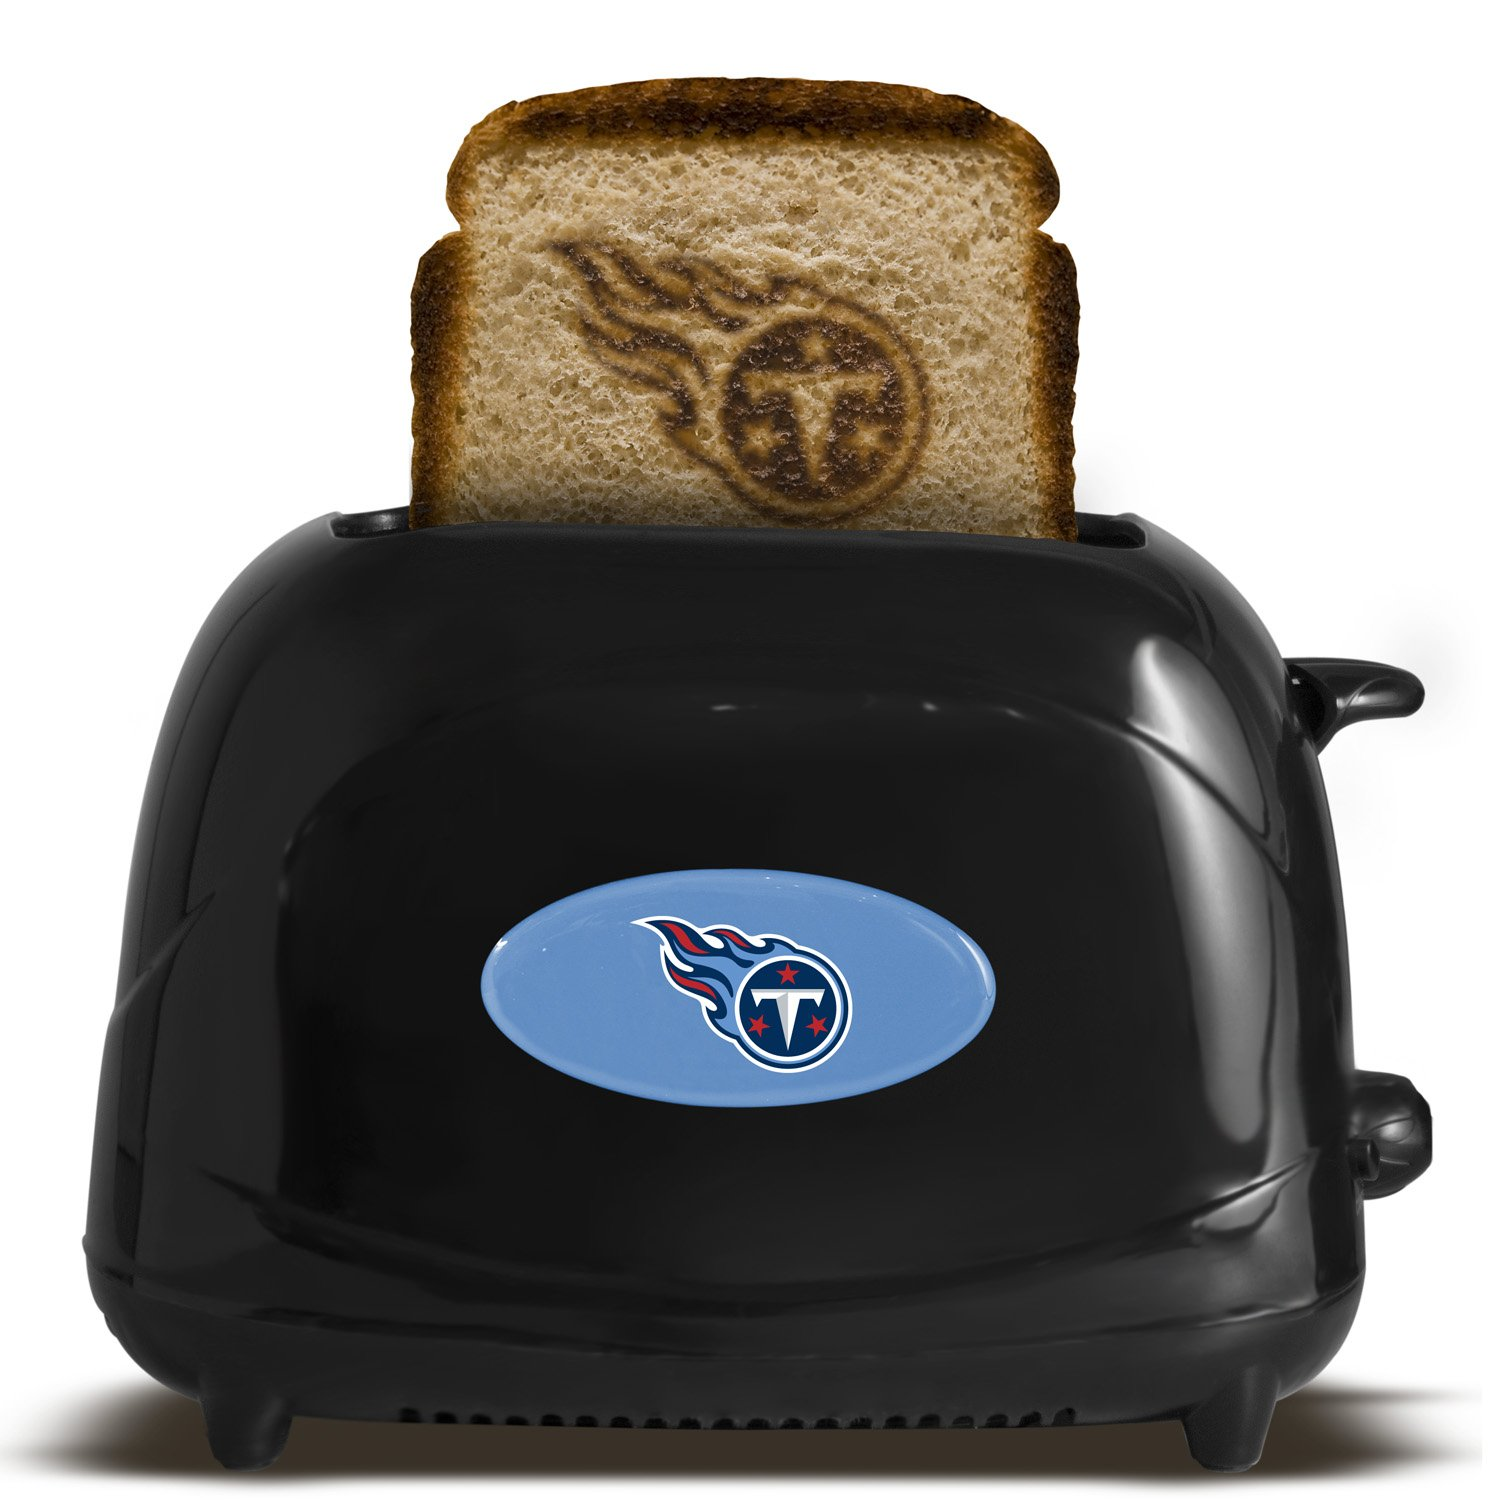 NFL Tennessee Titans Pro Toaster Elite by Pangea Brands